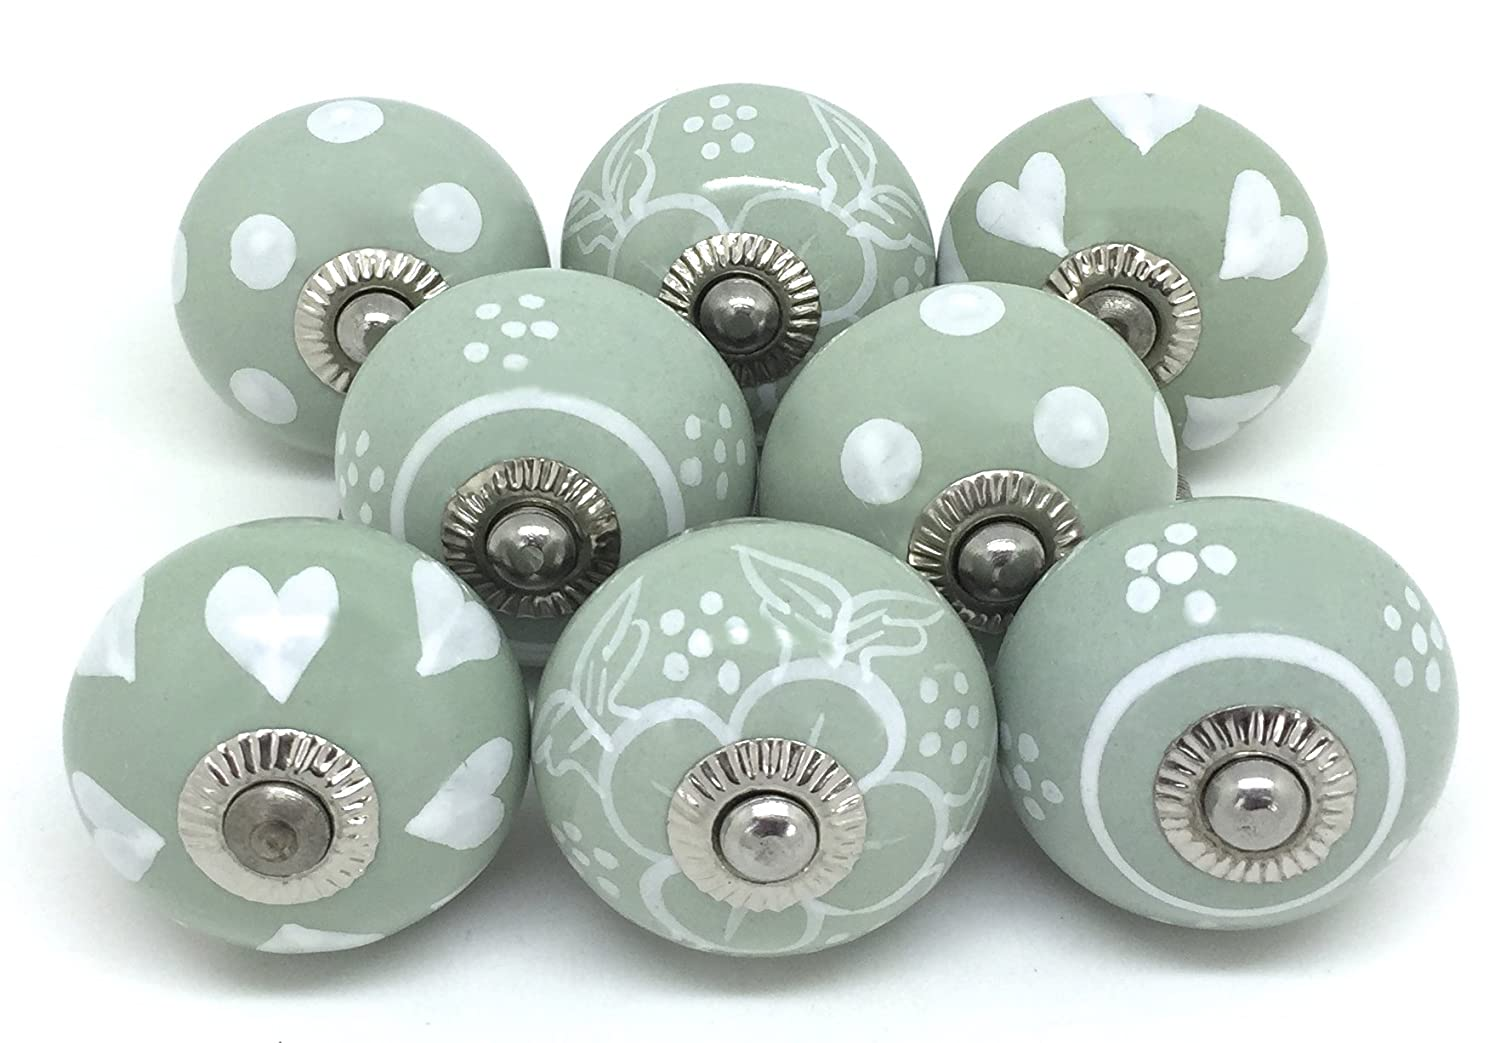 Set of 8 Sage Green White Ceramic Door Knobs by These Please S8